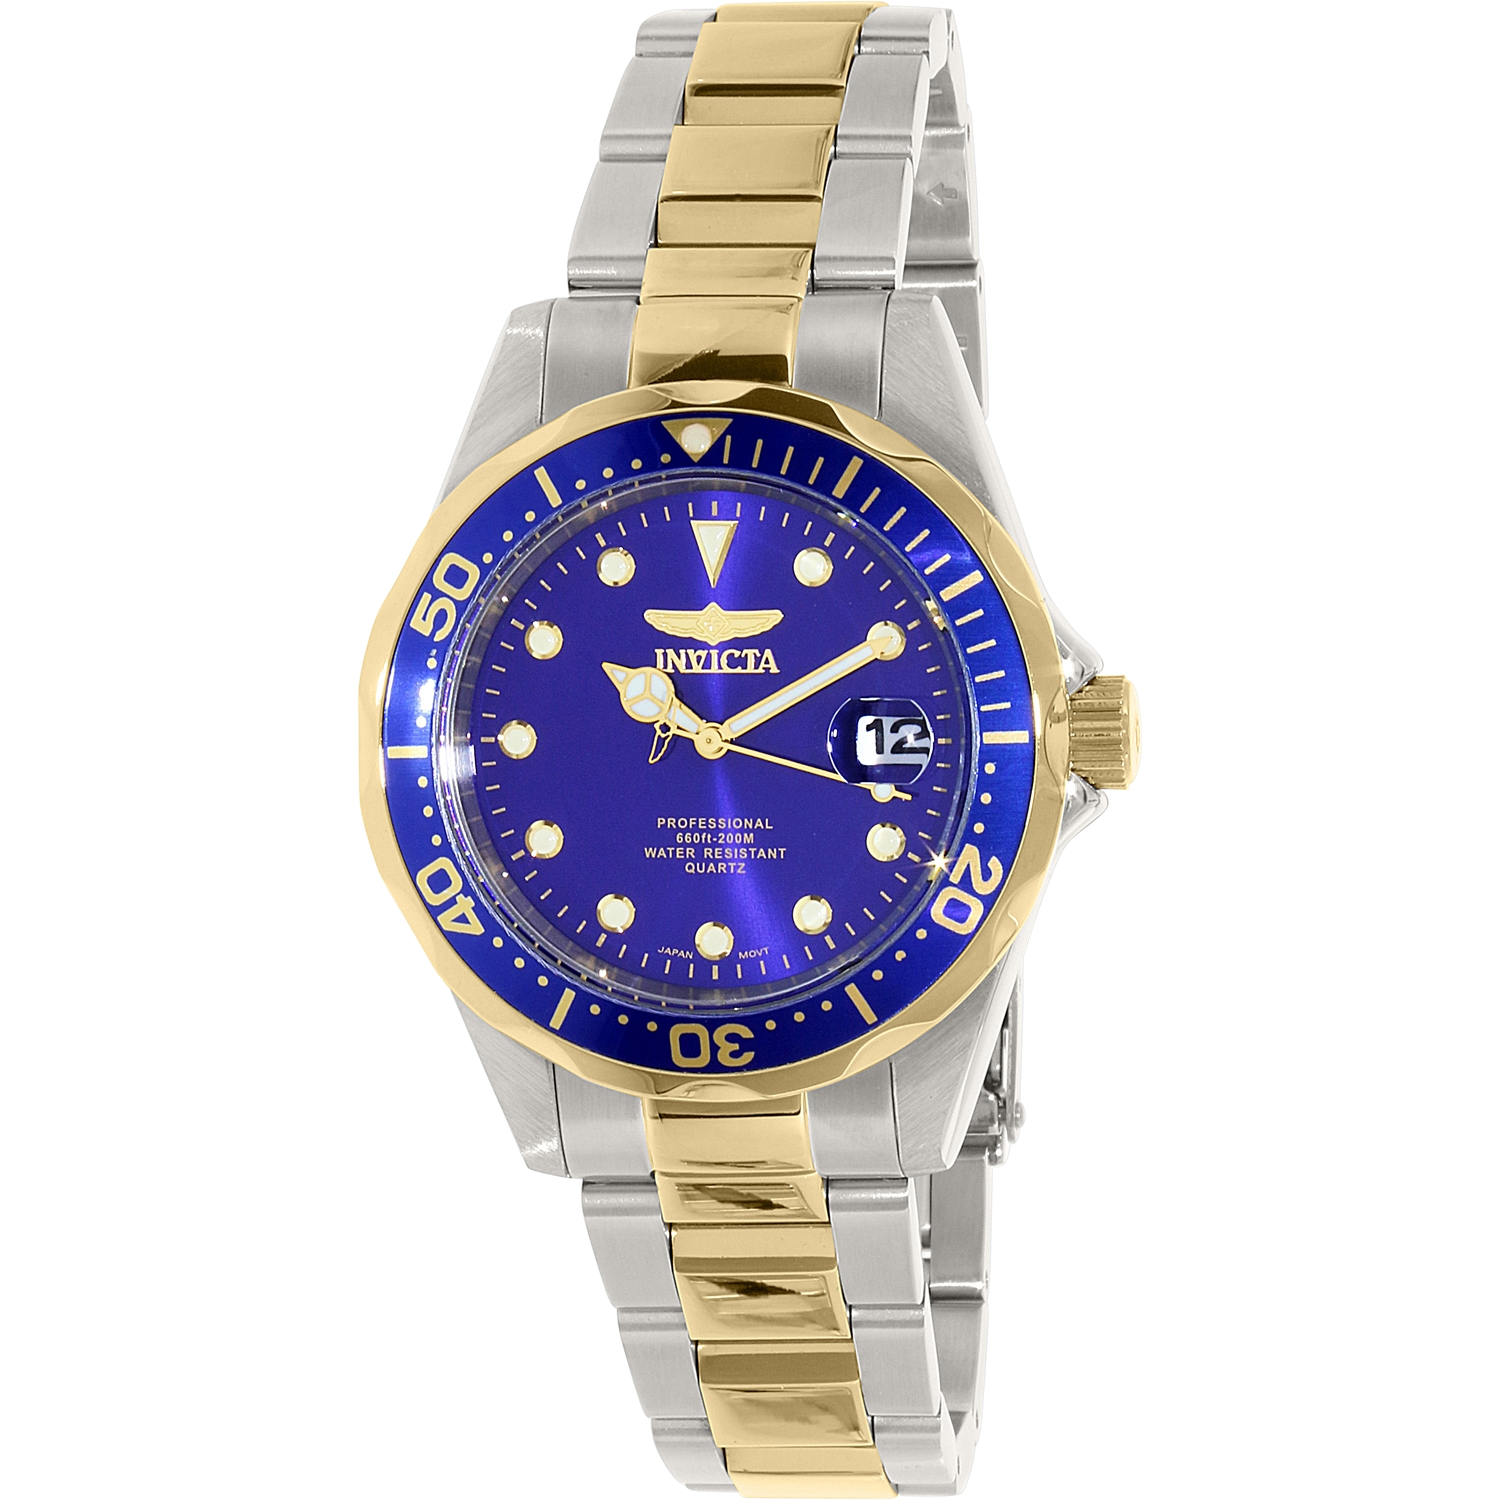 Invicta Men's Pro Diver Two-Tone Stainless Steel Watch wi...